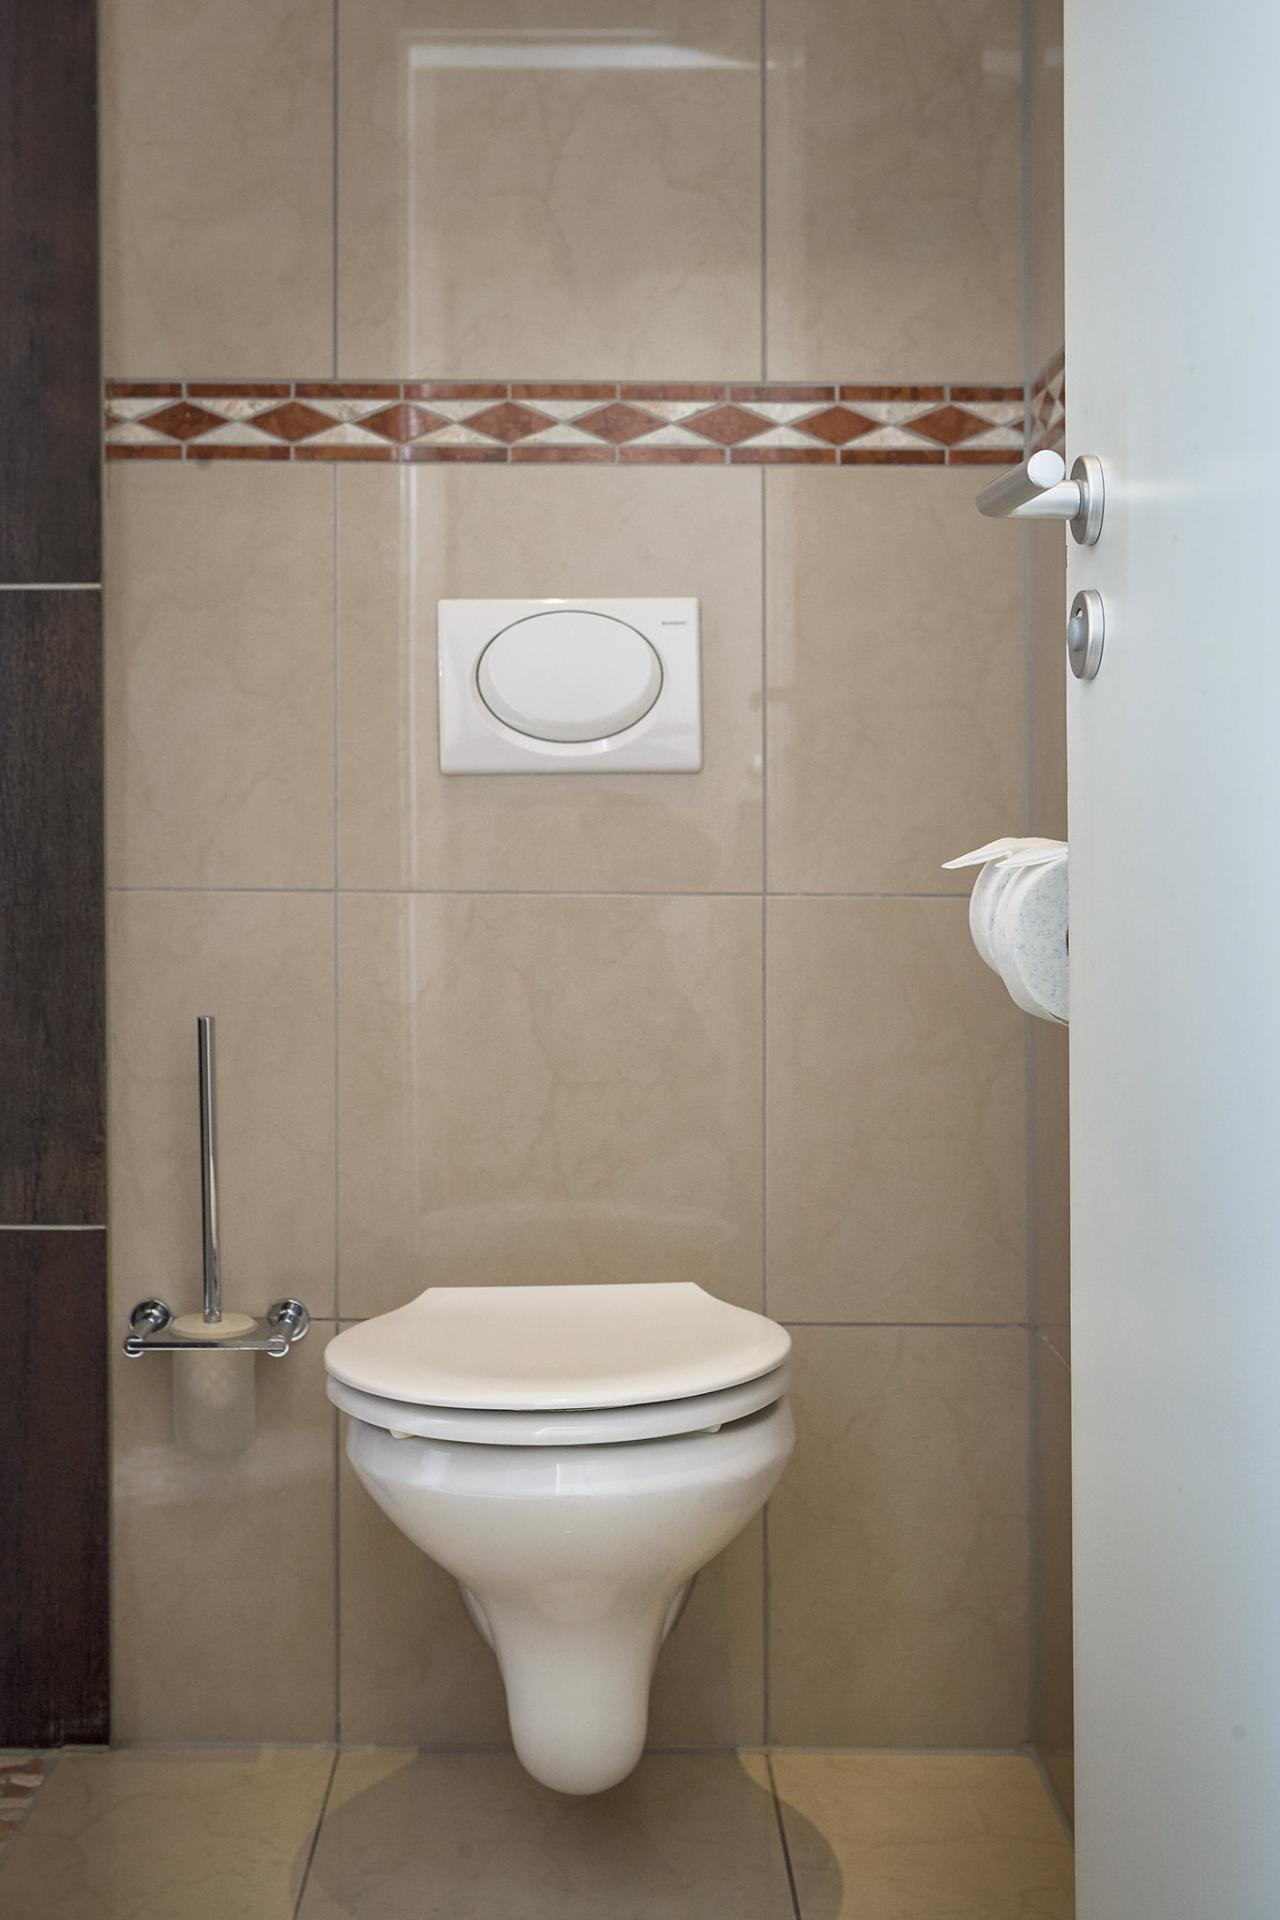 WC at 343 Boardinghouse Apartments